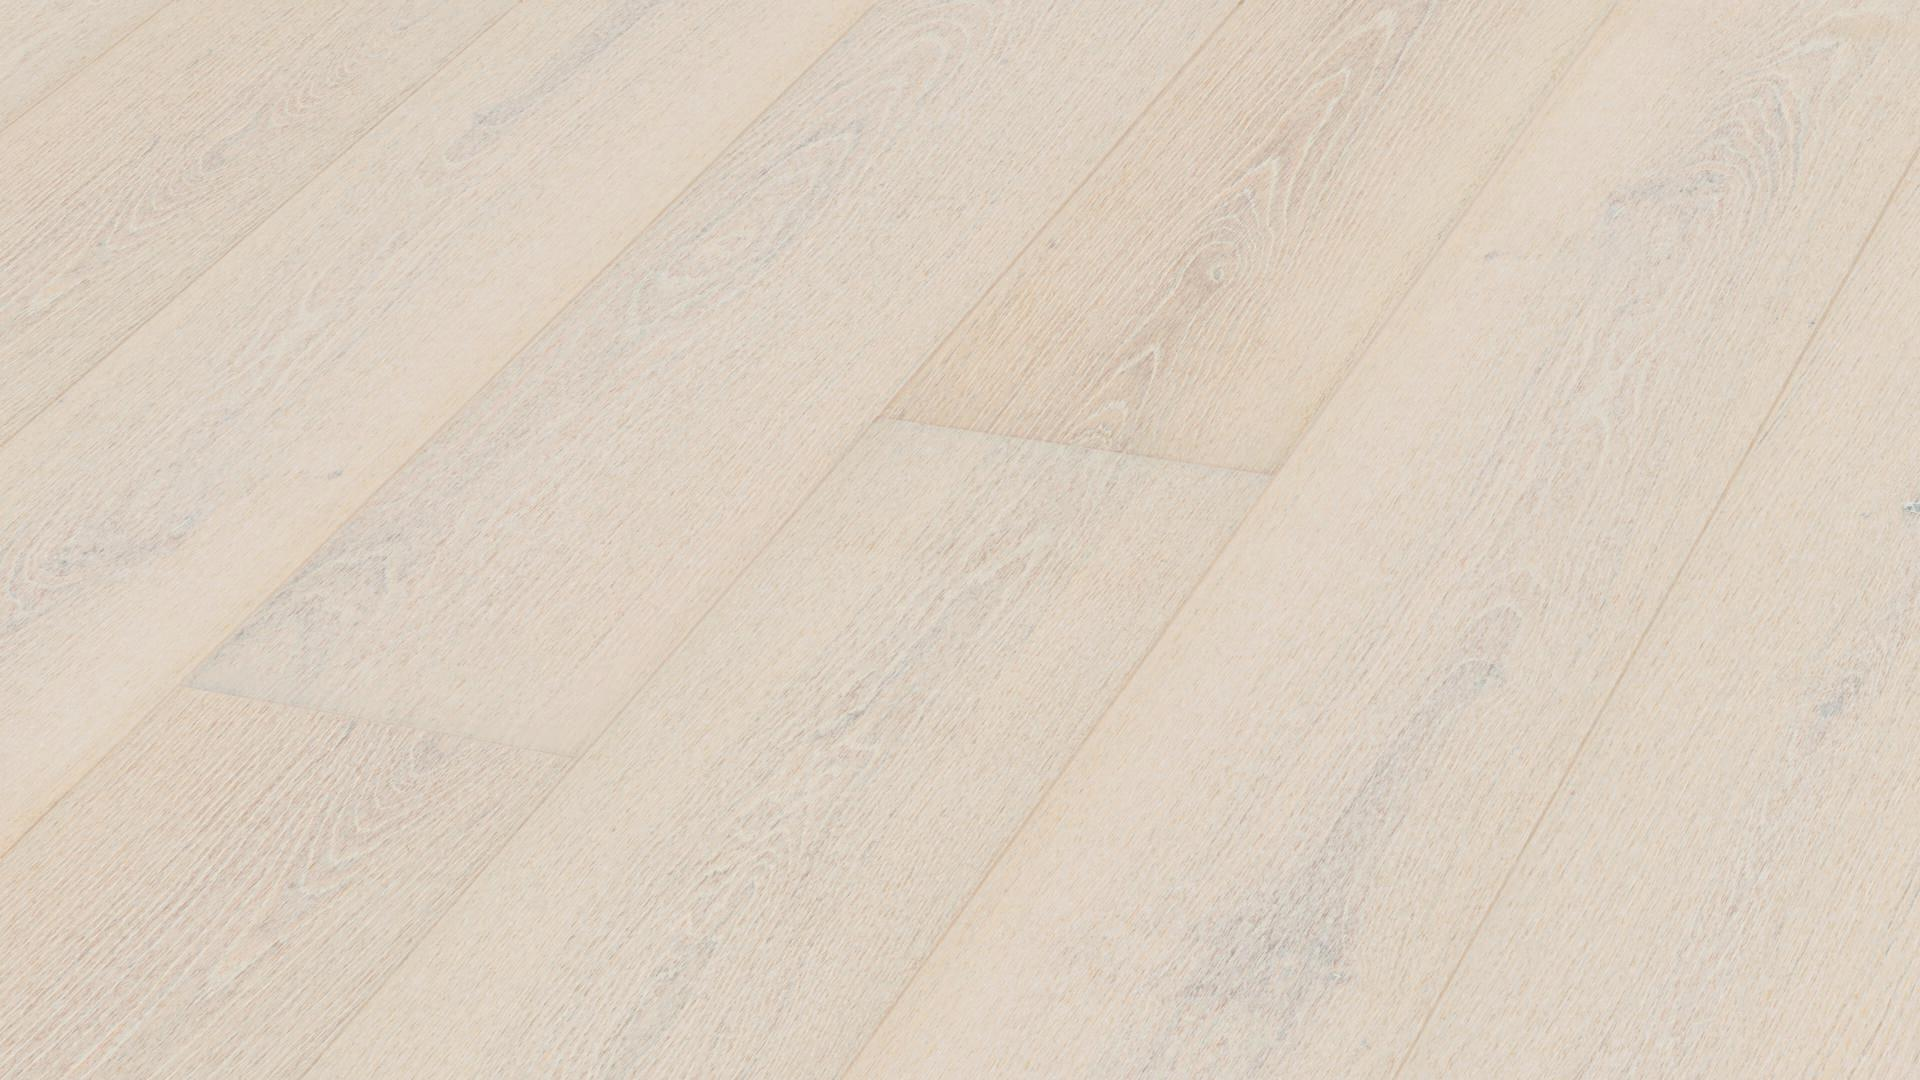 Lindura wood flooring HD 400 Natural polar white oak 8737